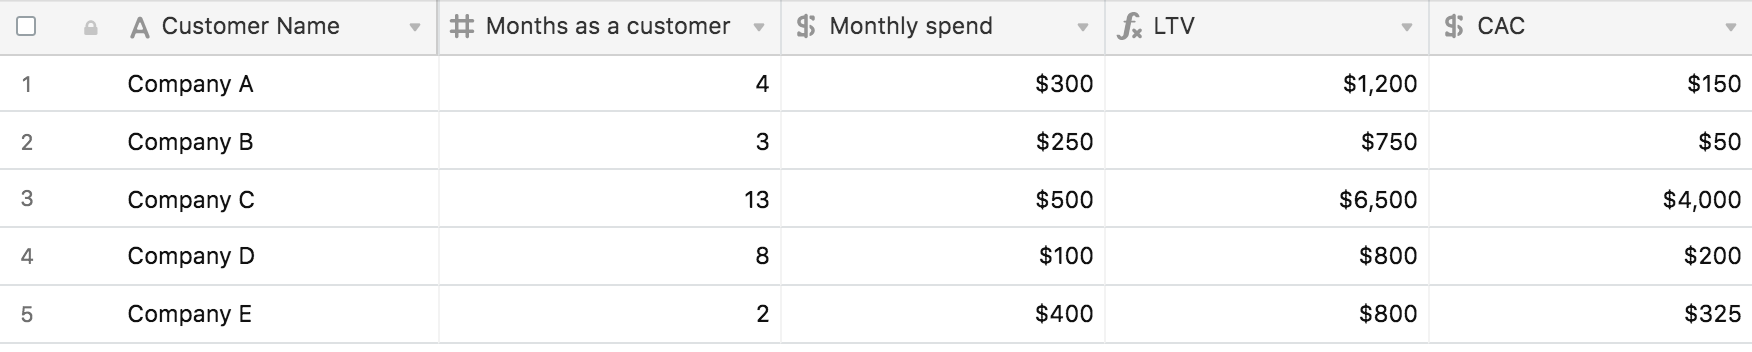 airtable screenshot showing cost of acquiring customers